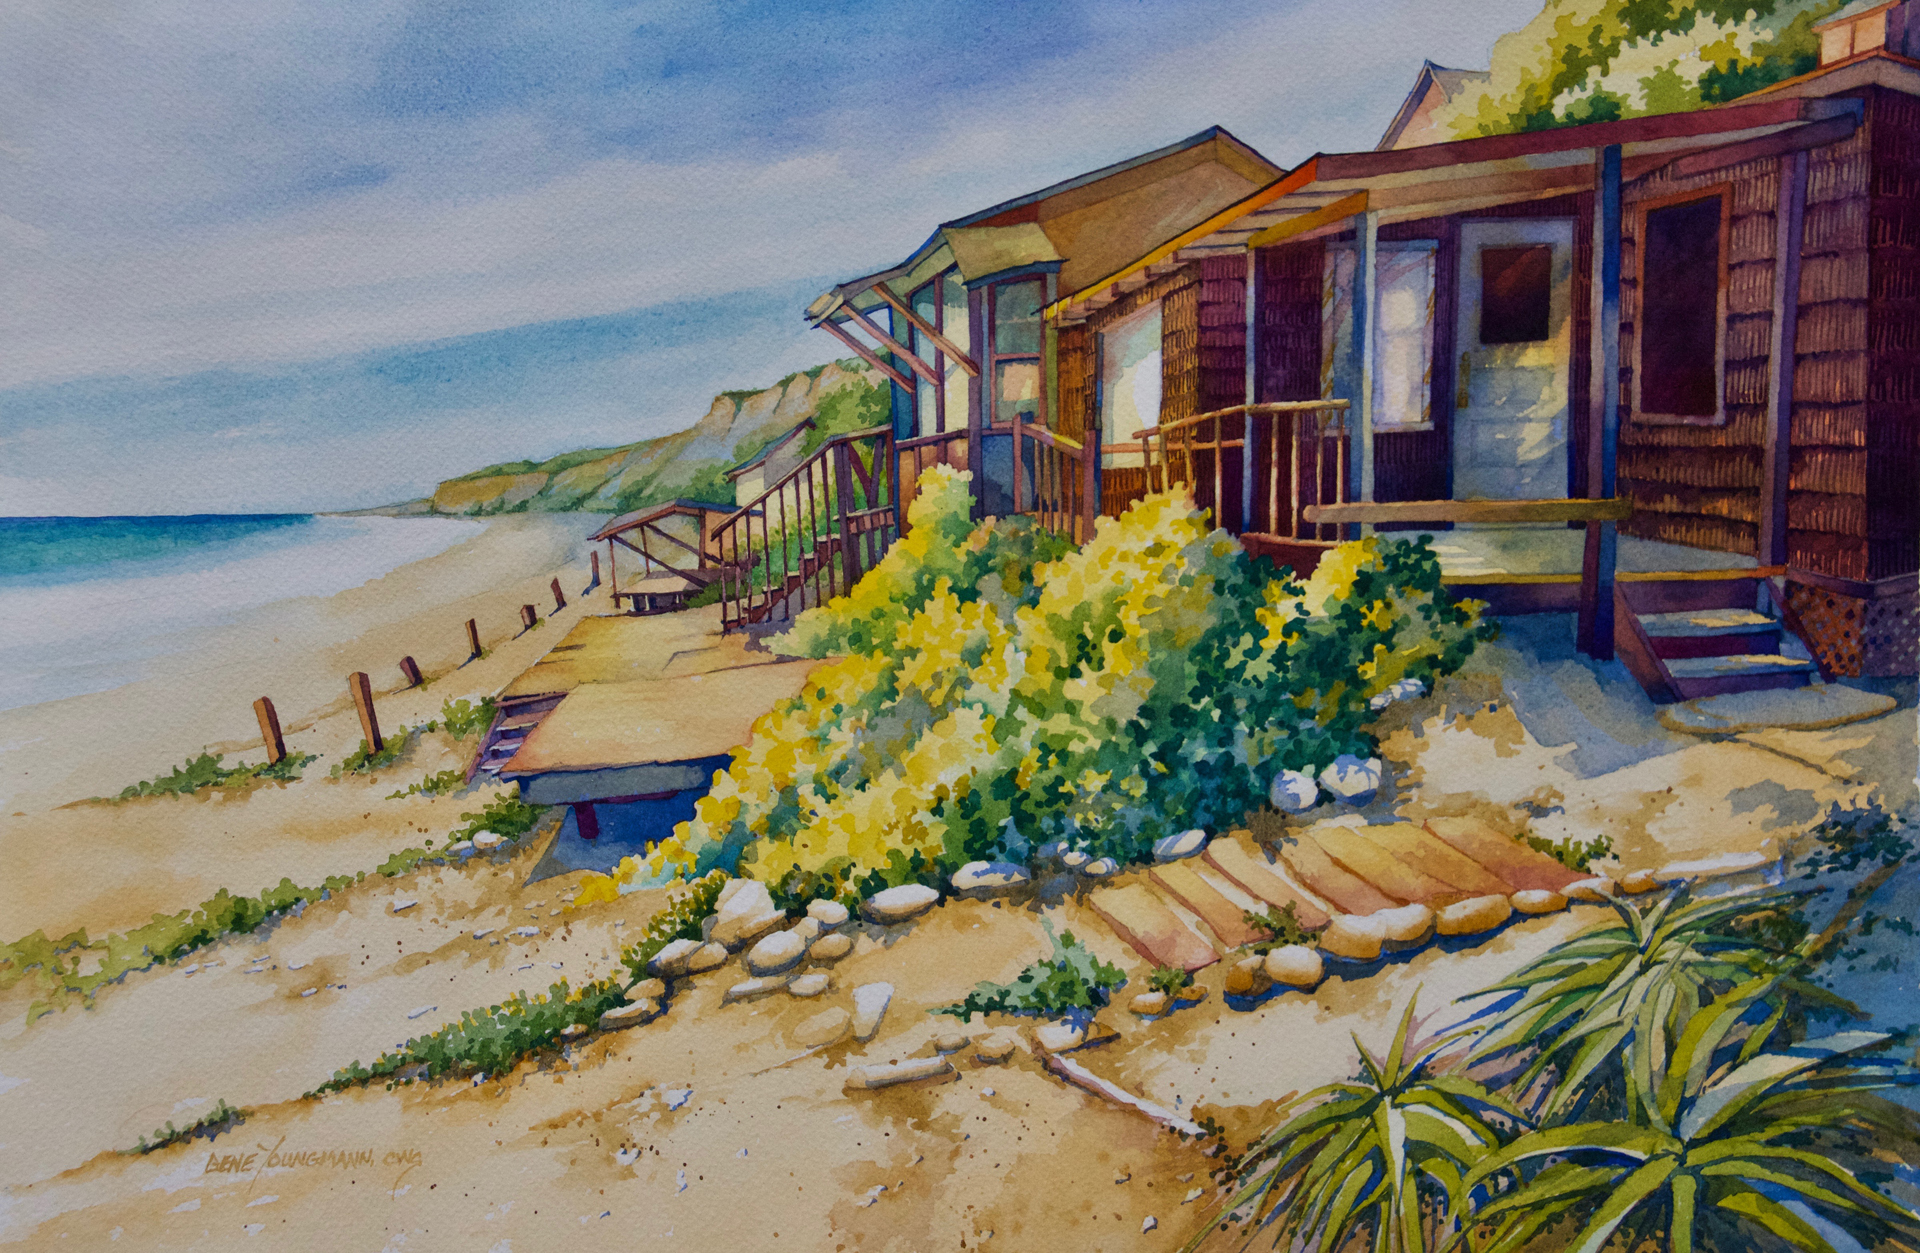 Painting #69 Beach Houses